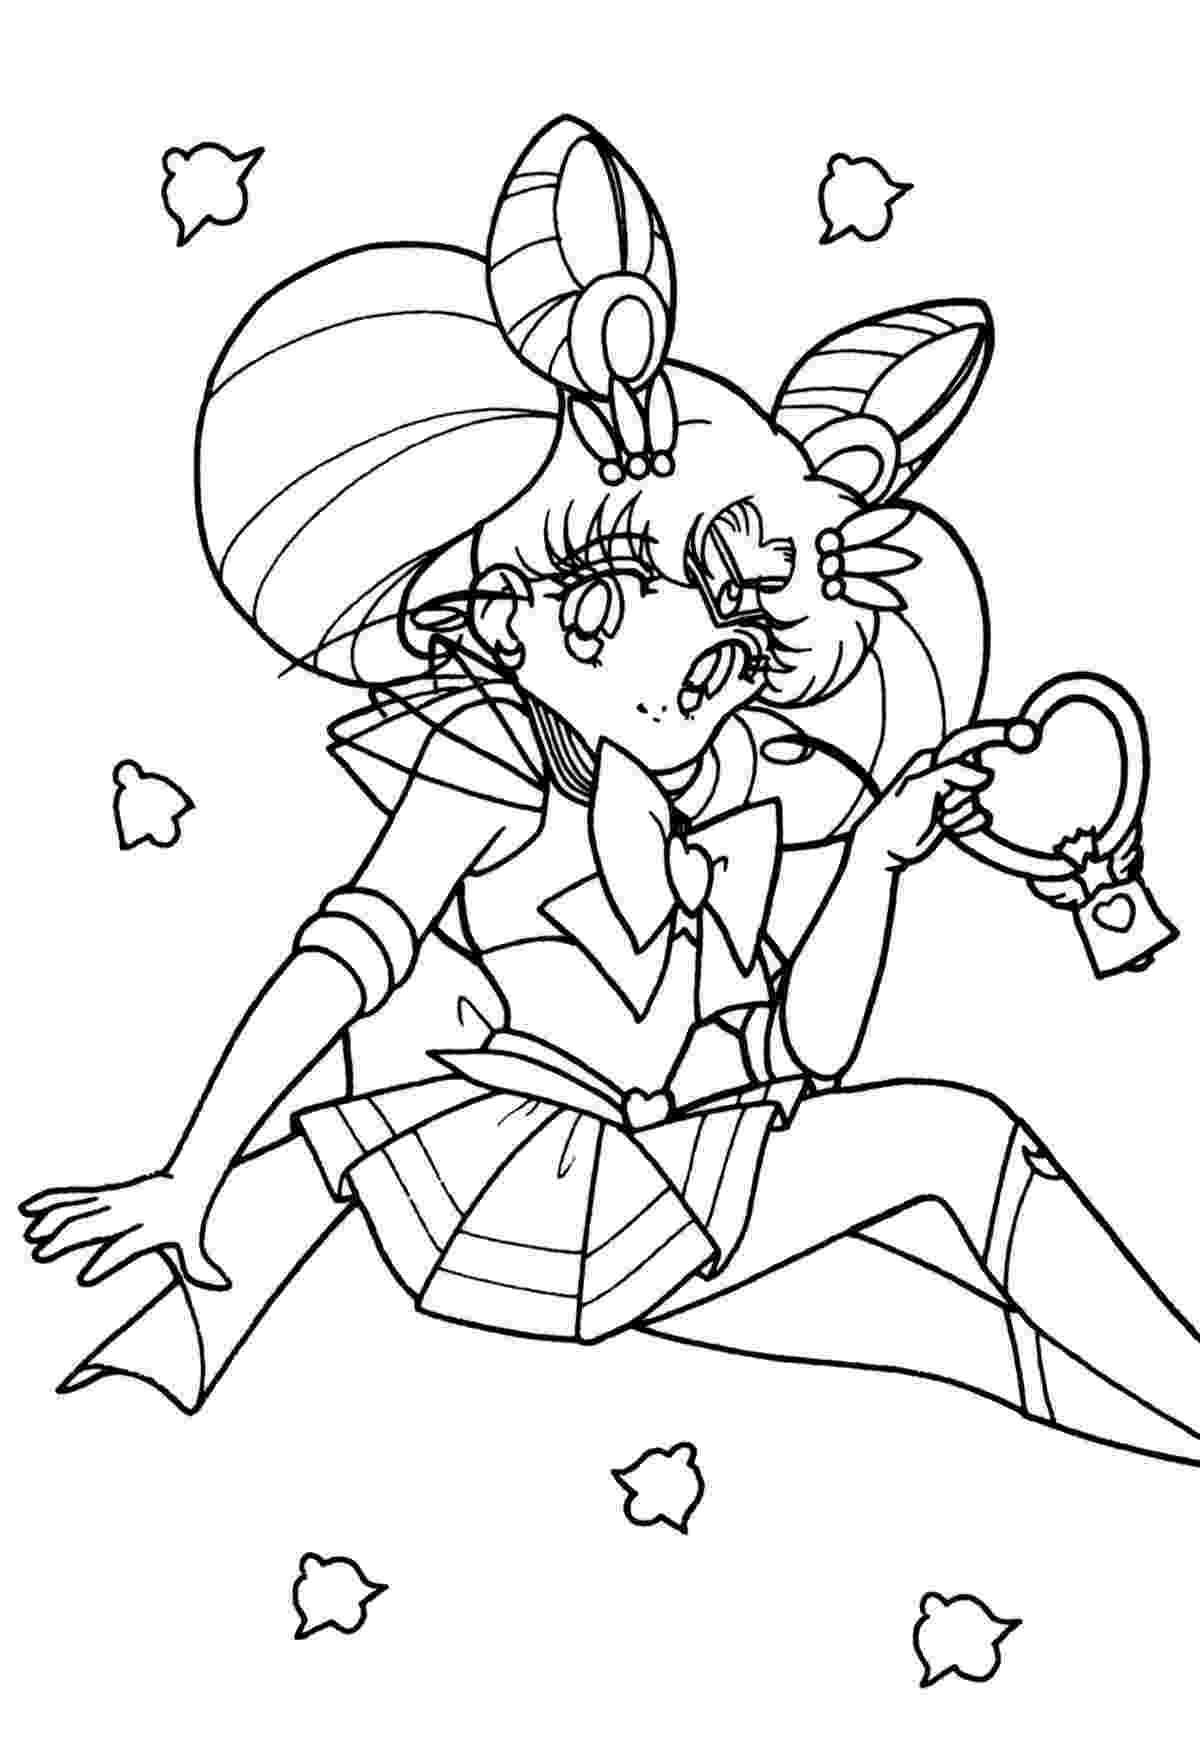 sailor moon coloring pages sailor moon coloring pages getcoloringpagescom pages coloring sailor moon